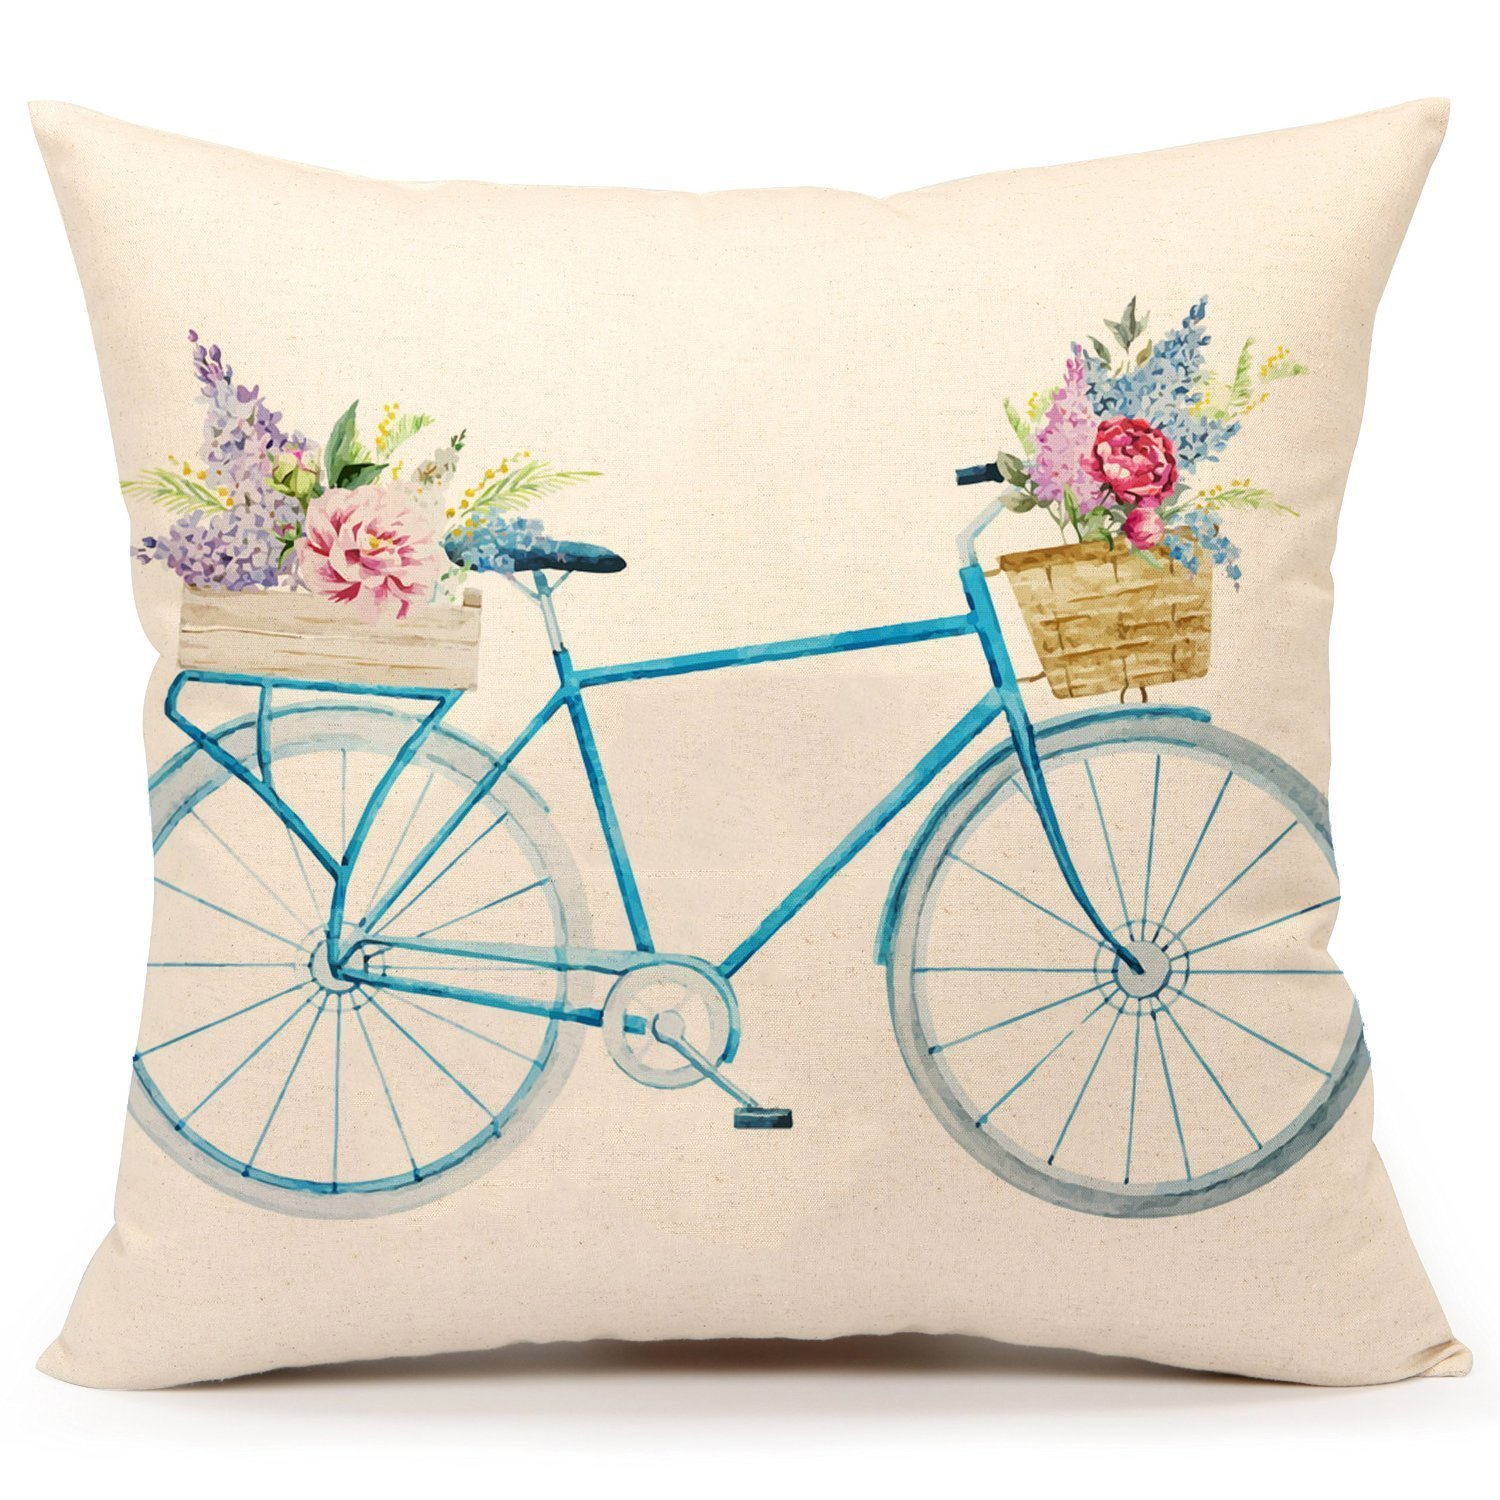 A vintage bike with spring flowers pillow cover - budget friendly home decor aff link